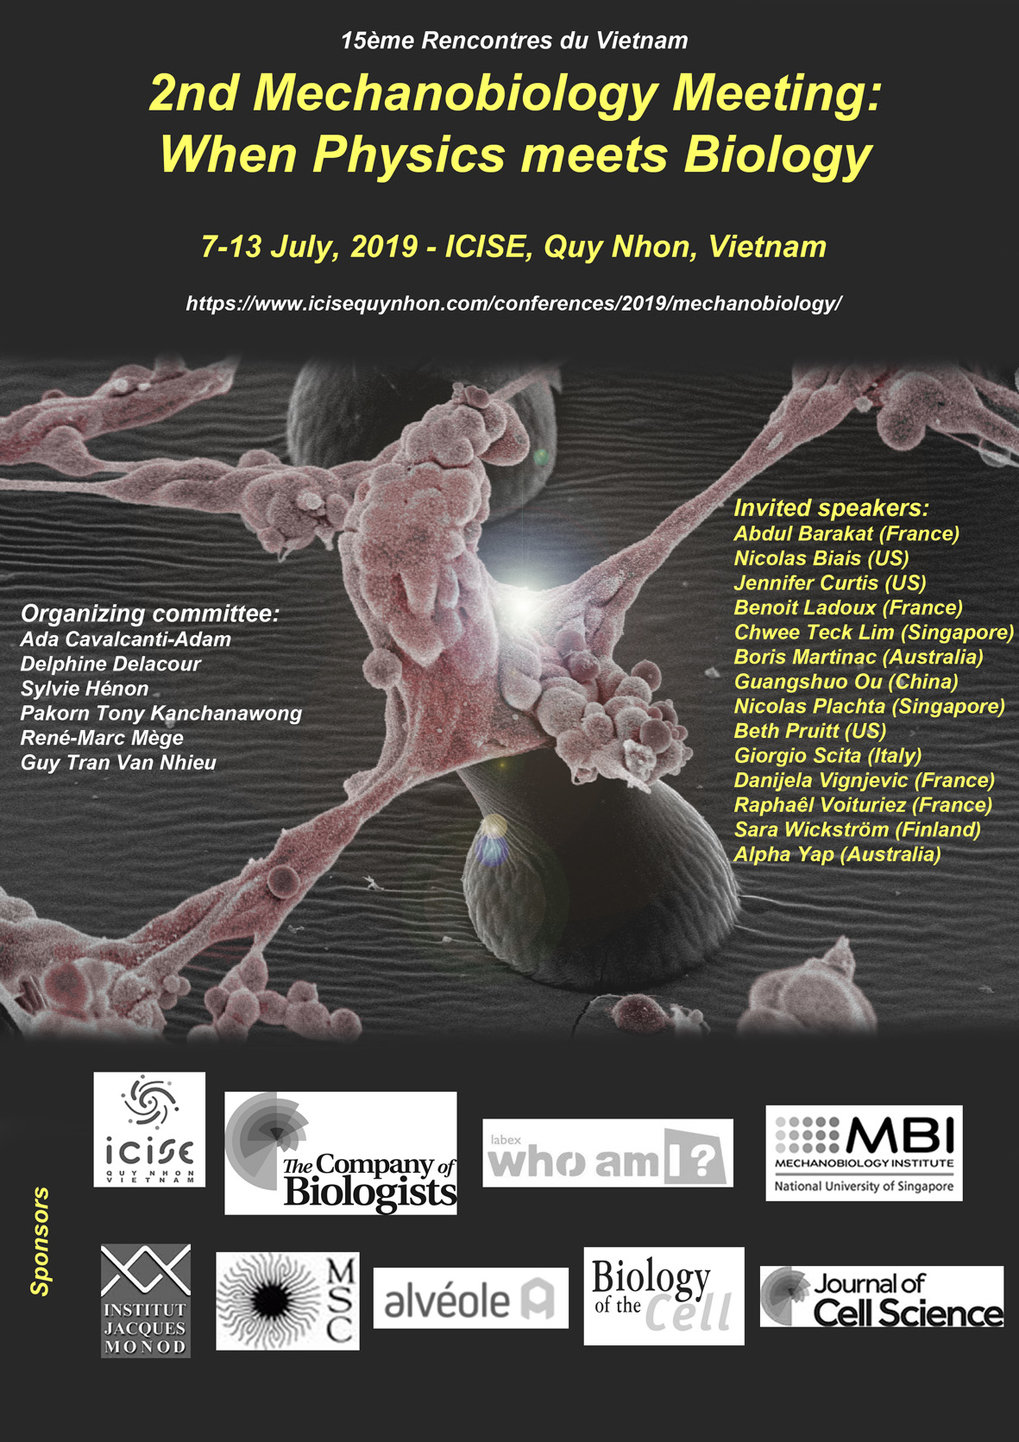 Mechanobiology meeting: when Physics meets Biology